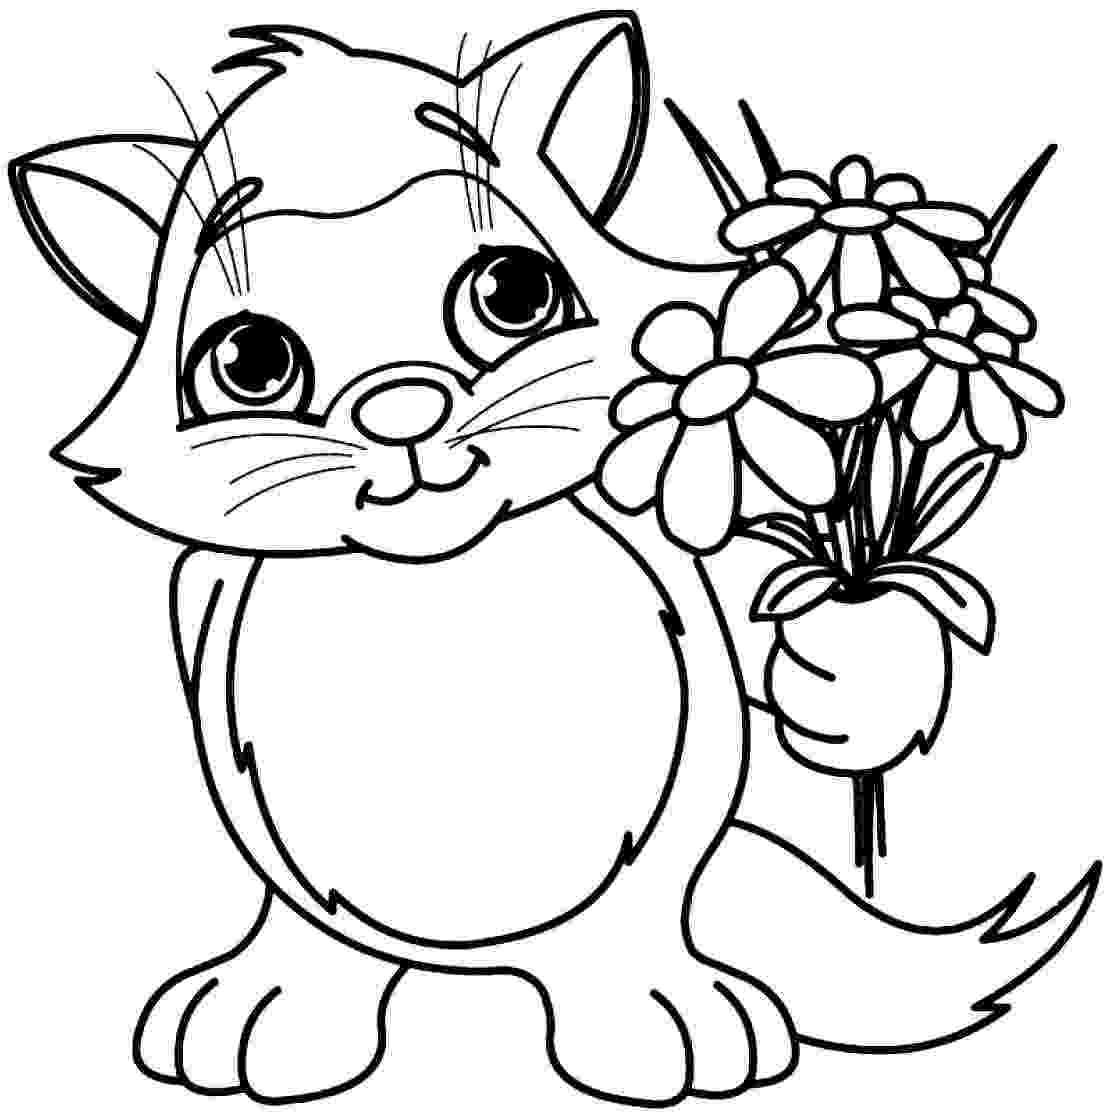 flower coloring pages printables flower coloring 365 flower pages printables coloring